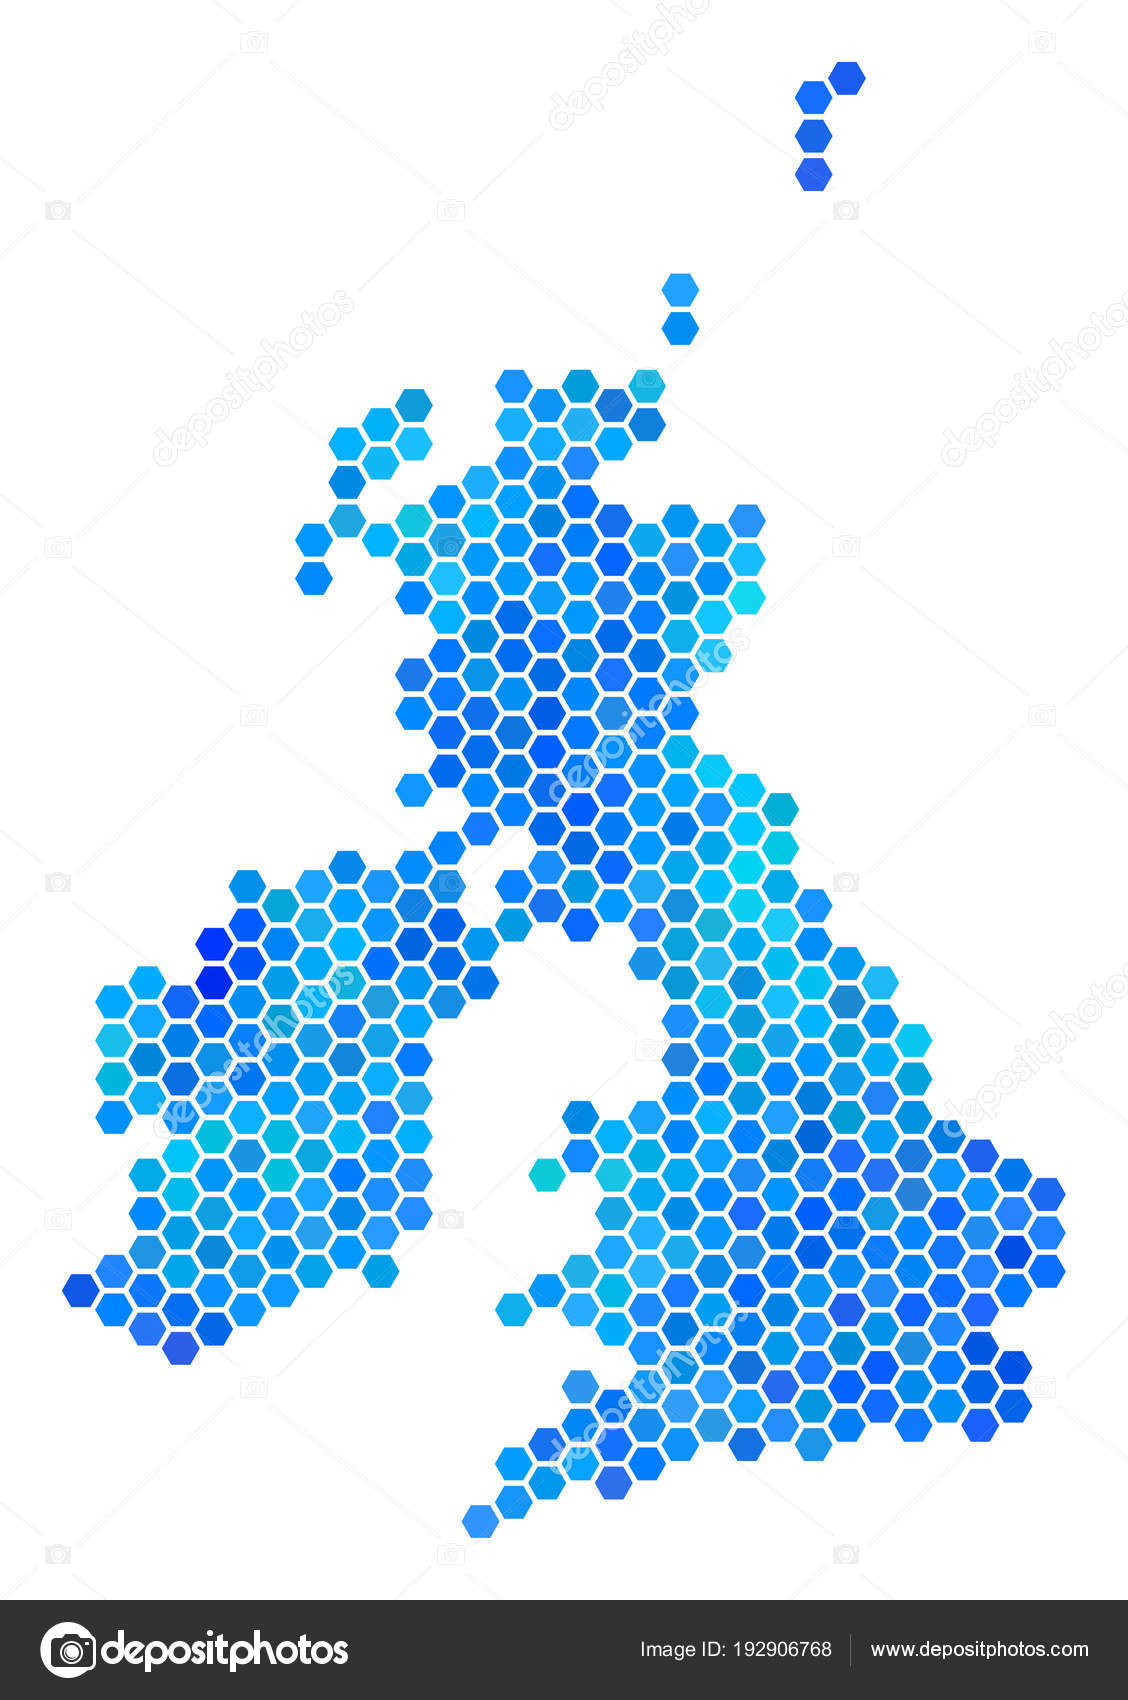 Britain And Ireland Map.Blue Hexagon Great Britain And Ireland Map Stock Vector C Ahasoft